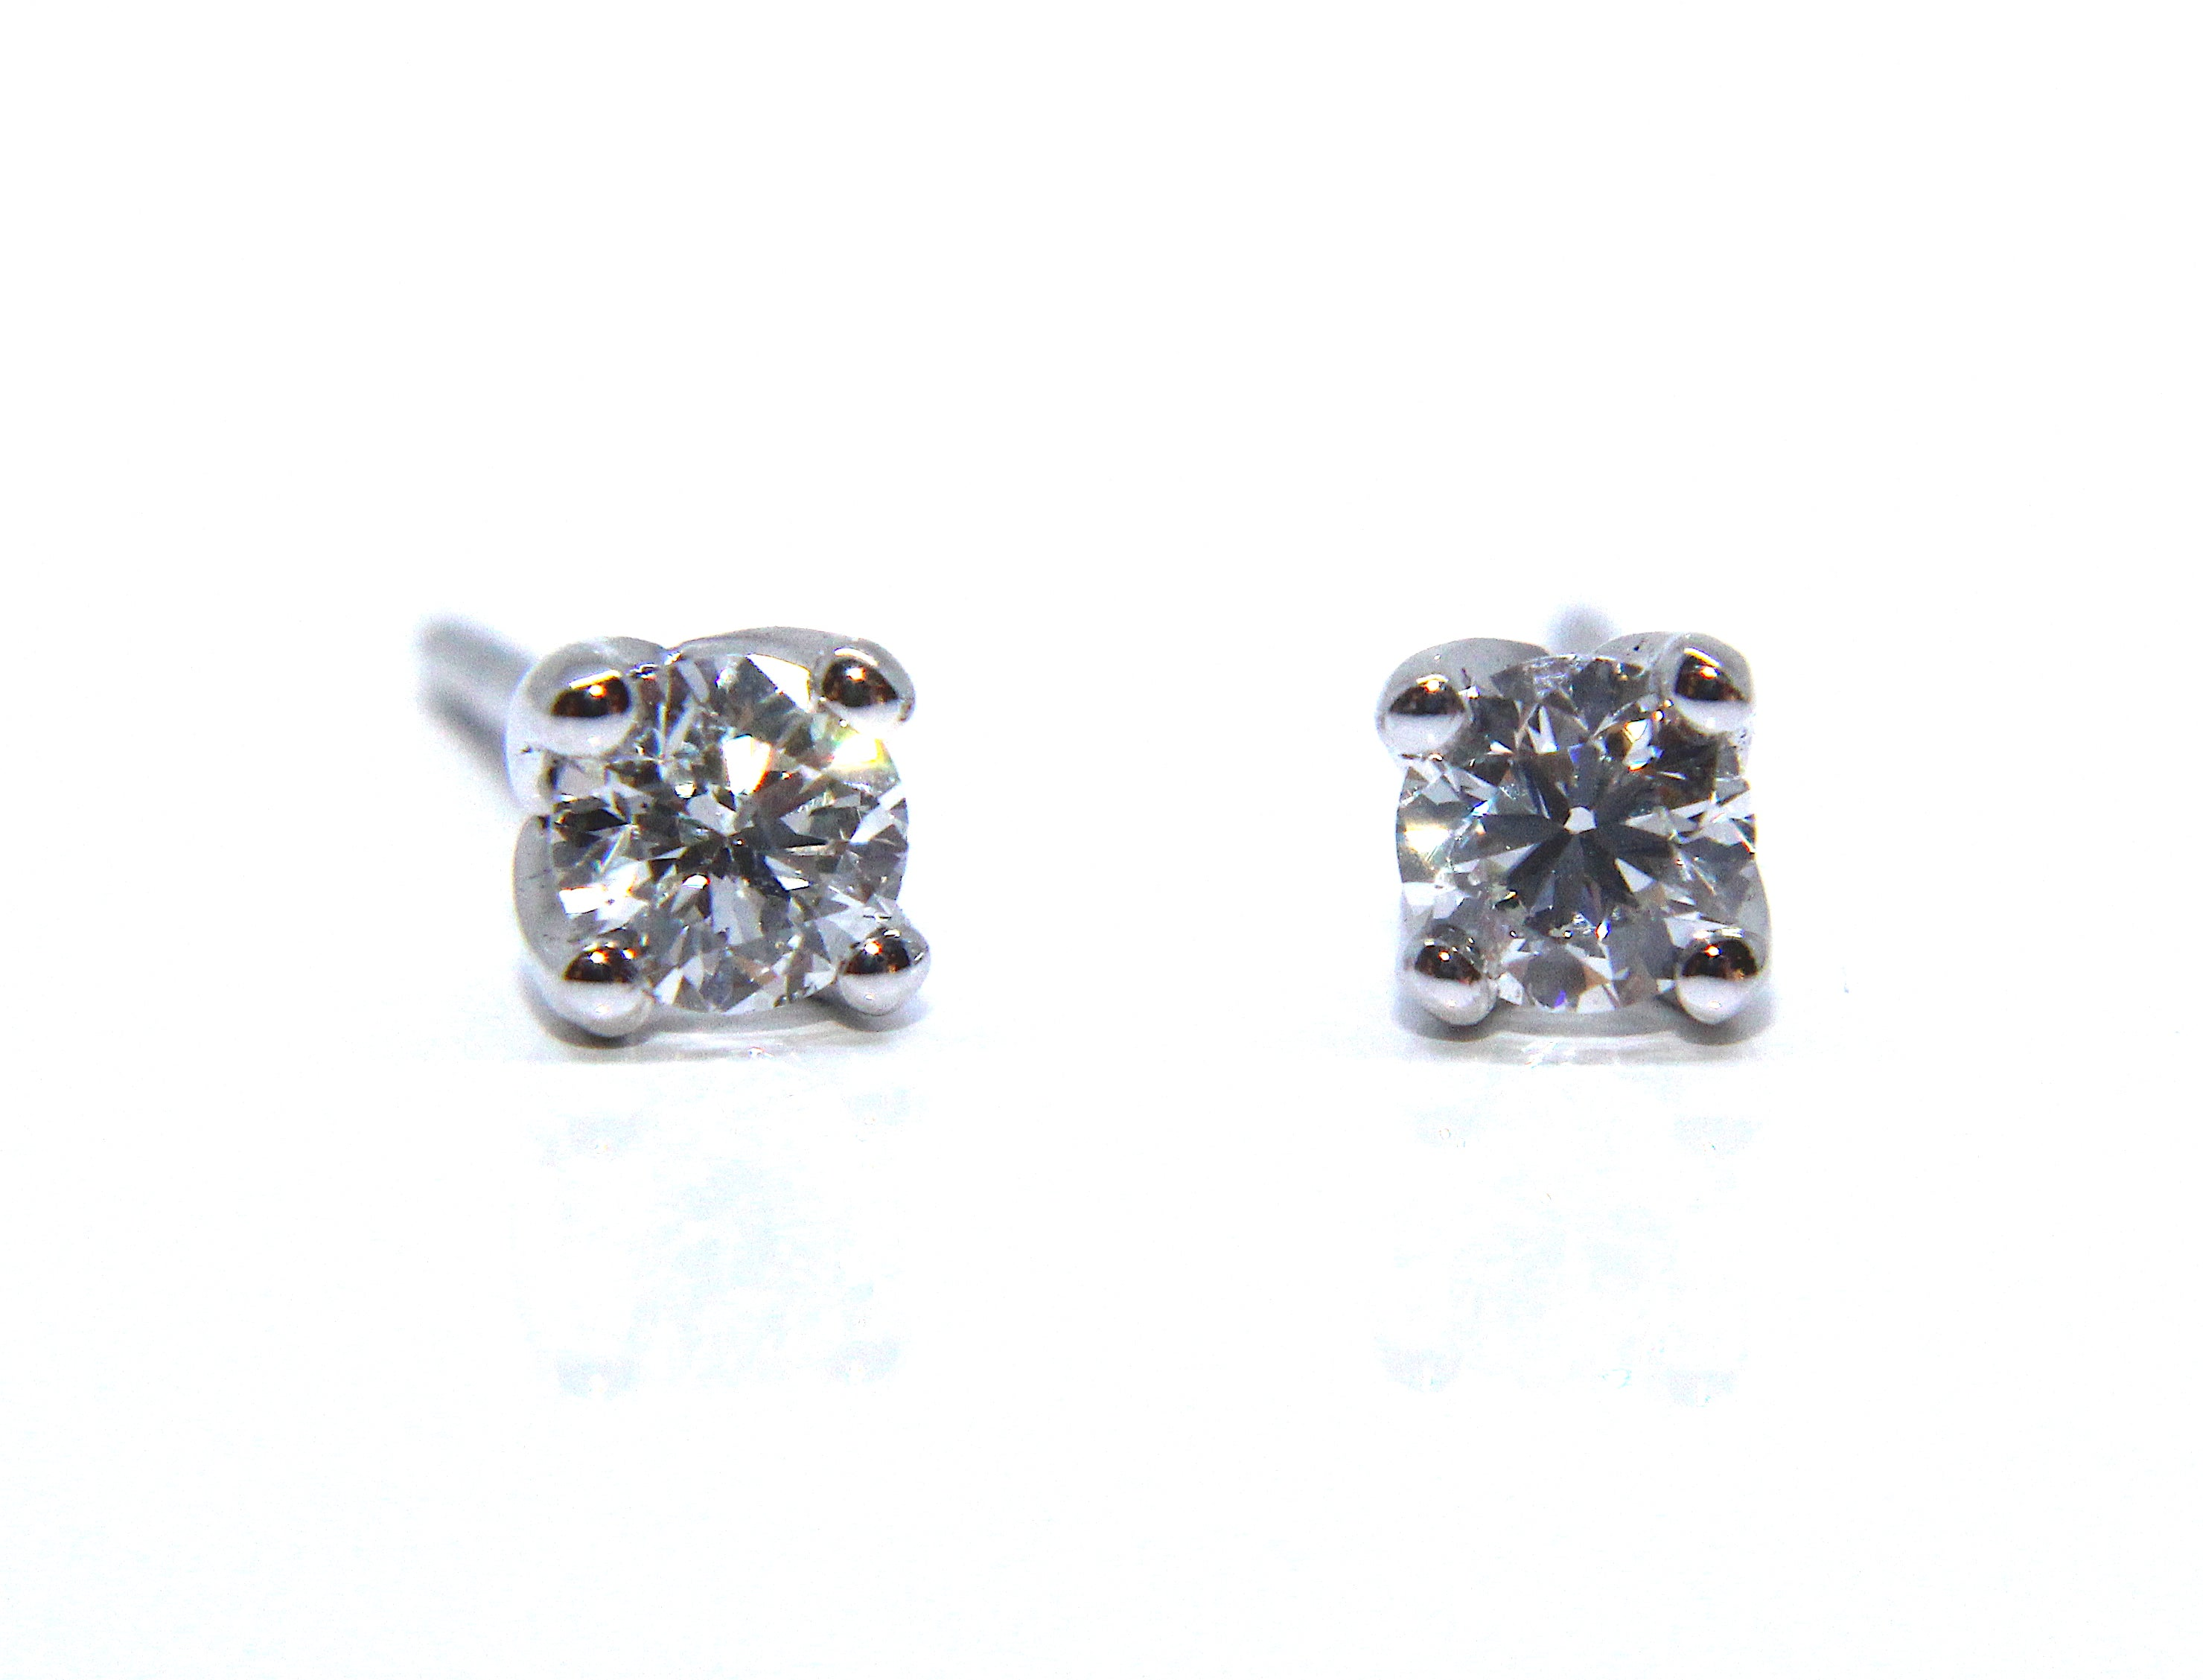 nugget diamond l jewellery p product large earrings white stud